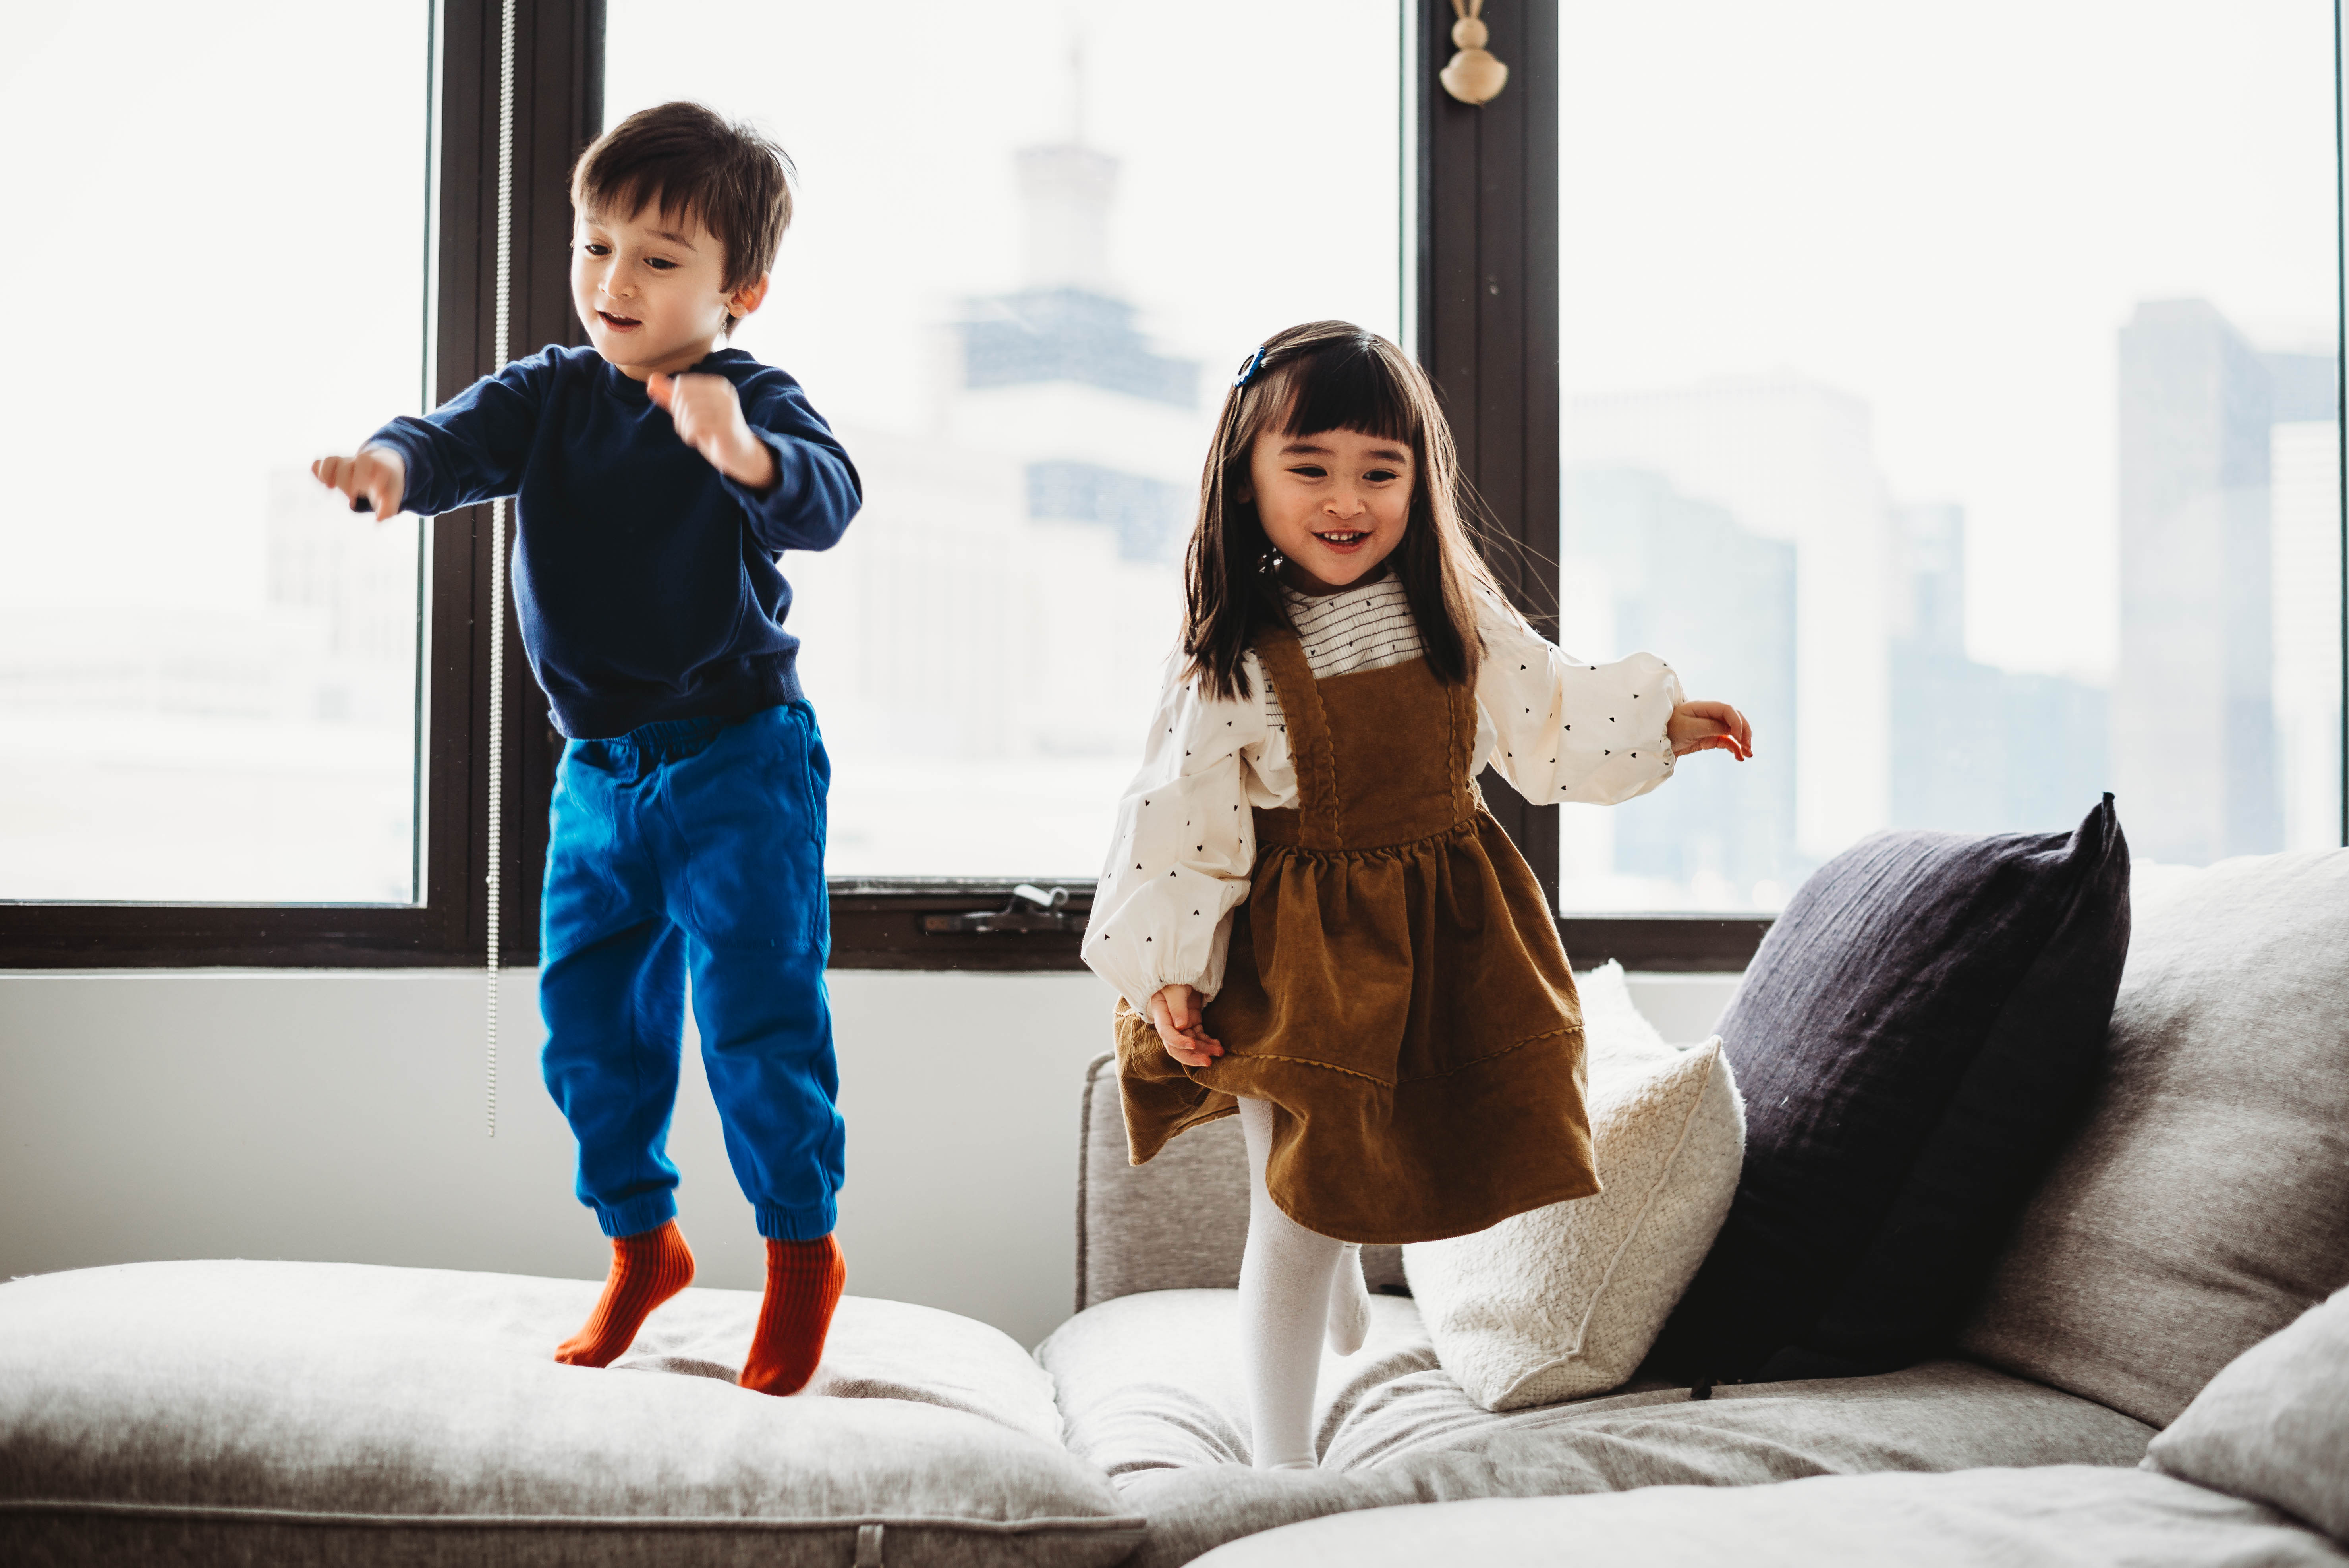 Three year old twin brother and sister jumping on the couch with the skyline of Chicago visible in the windows.